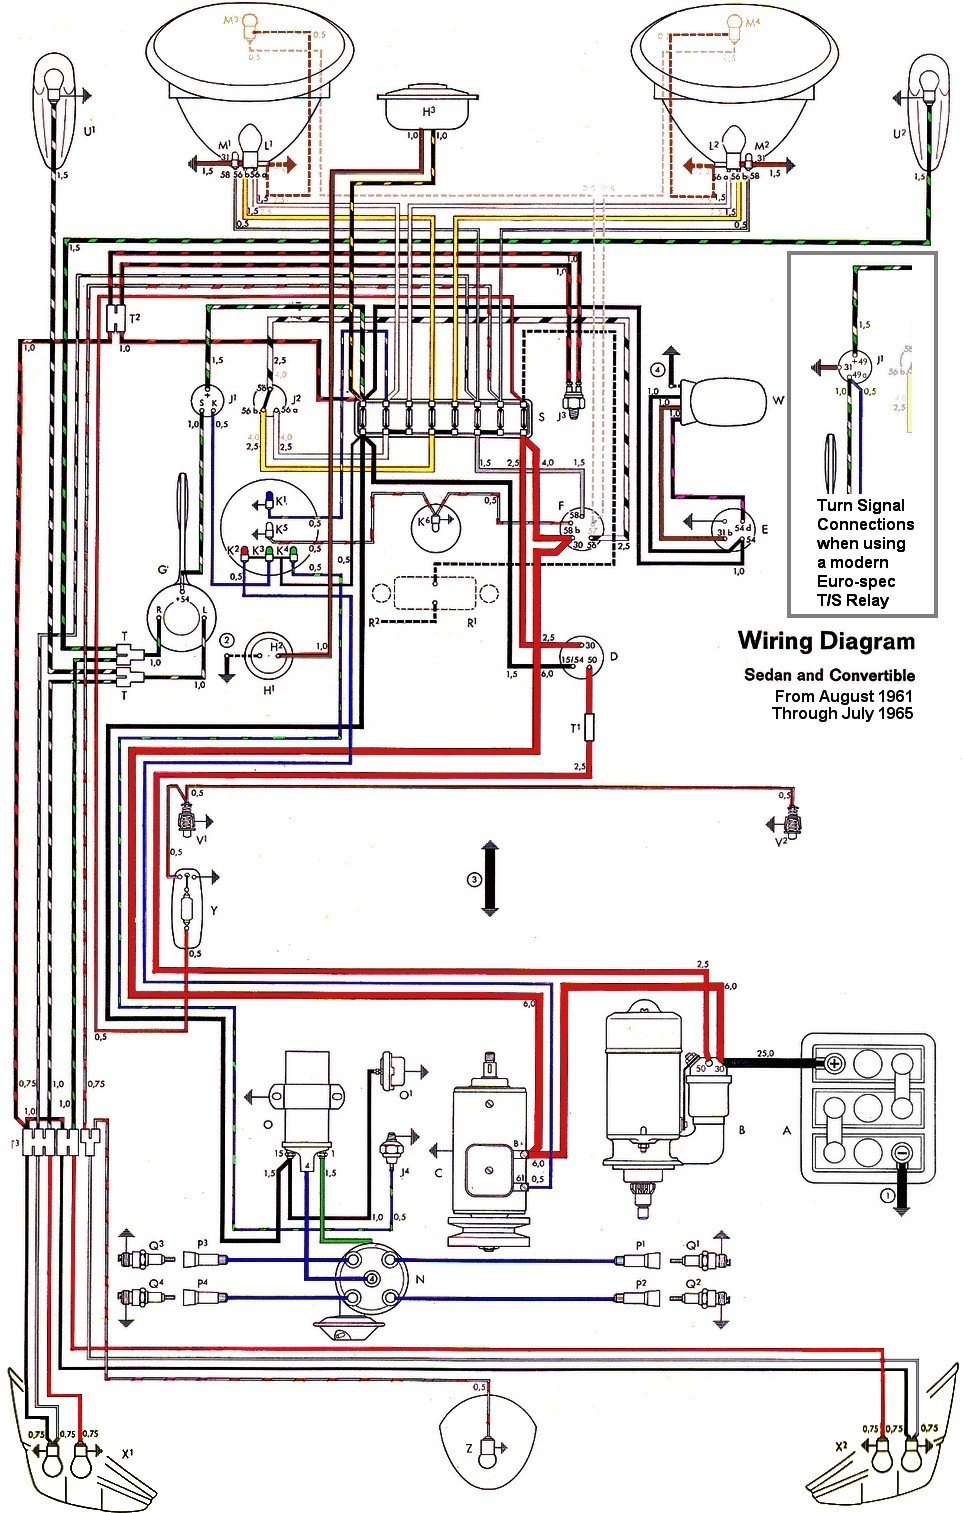 bug_62 65withinset wiring diagram vw beetle sedan and convertible 1961 1965 vw 1960 vw bus wiring diagram at fashall.co